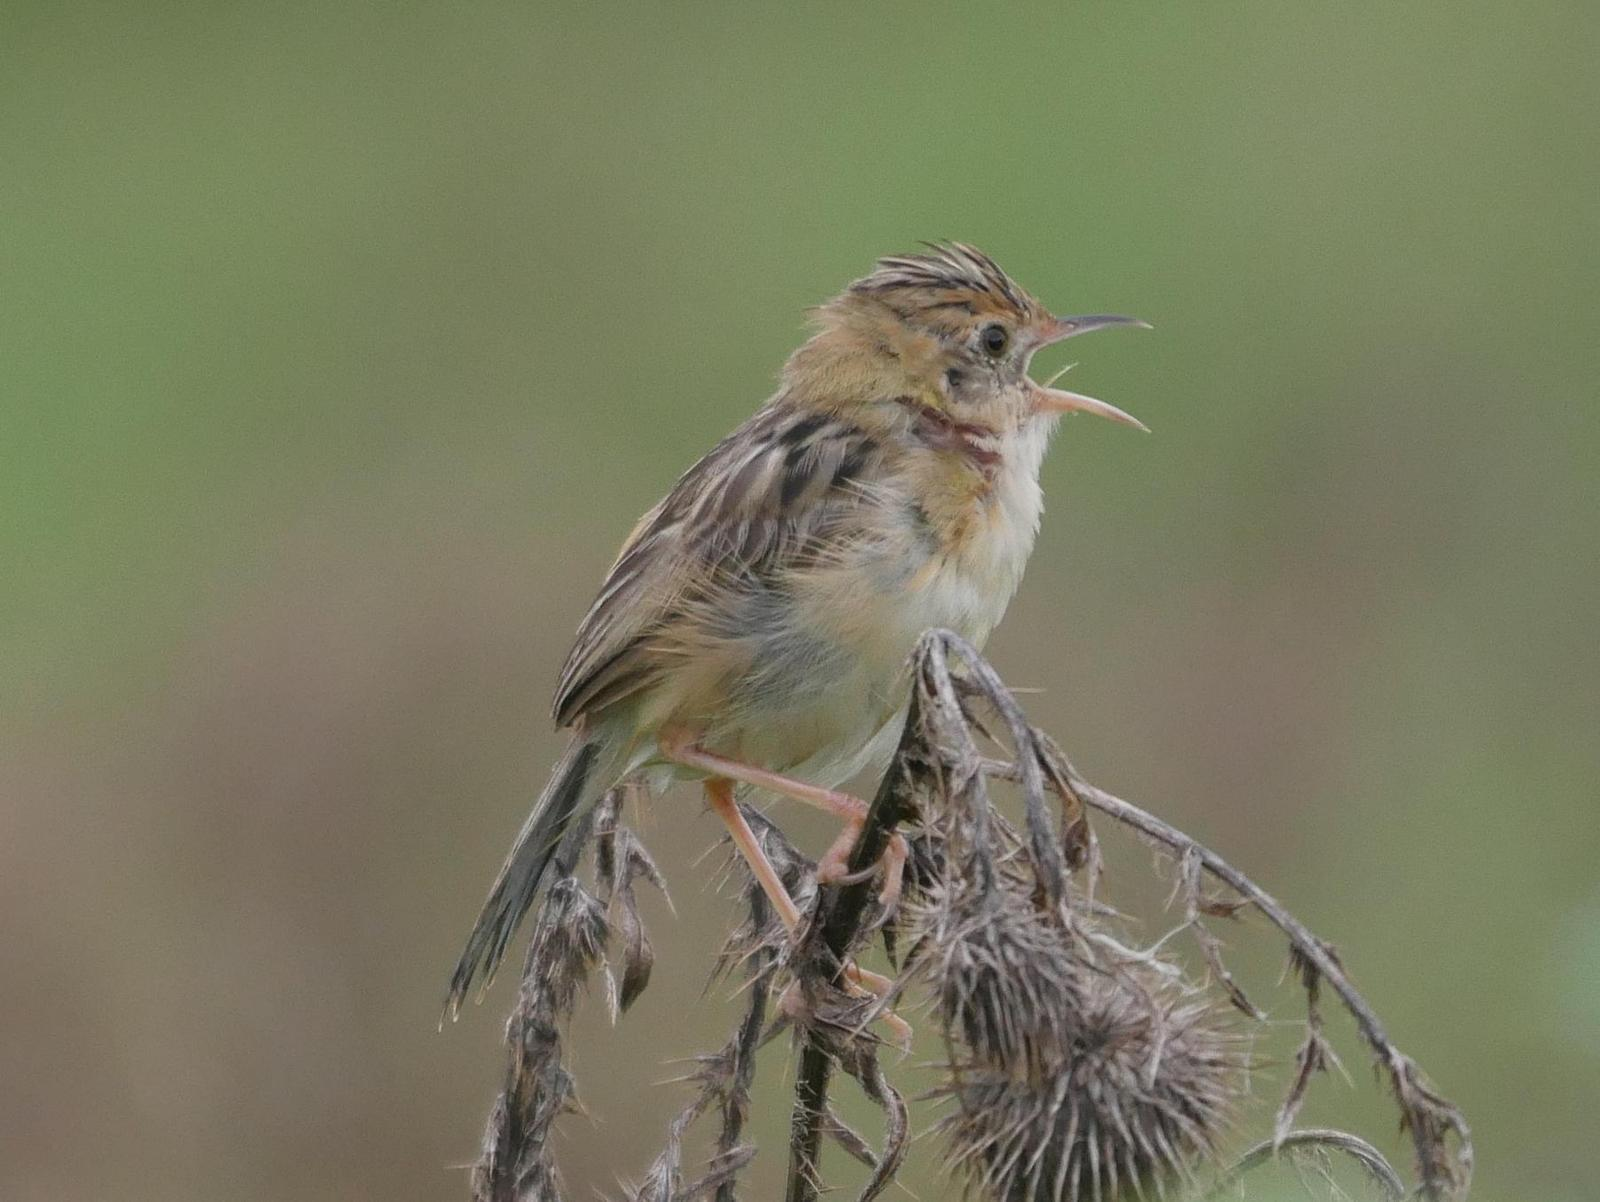 Golden-headed Cisticola Photo by Peter Lowe